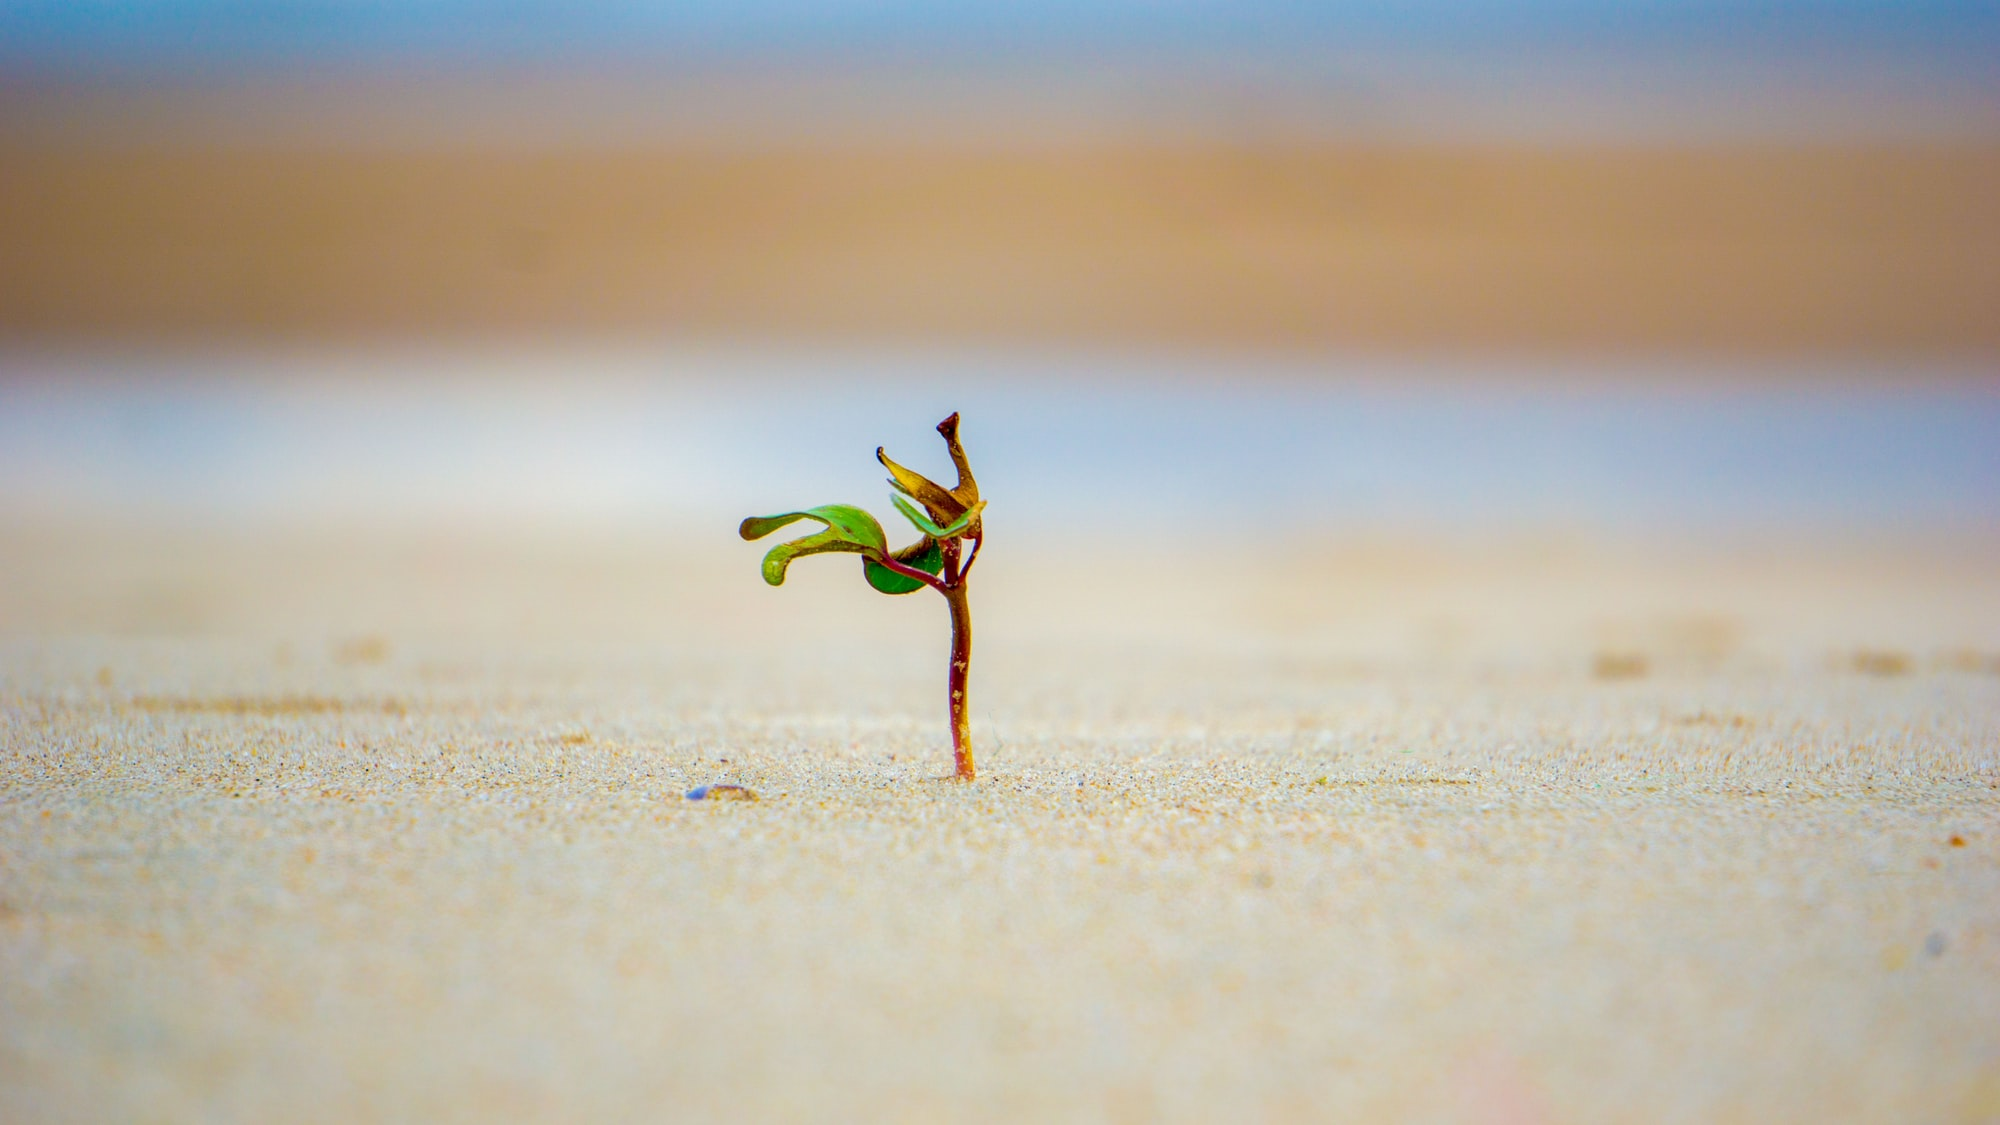 A small wild plants alone facing the waves of the Vietnam sea.I was laying down on the beach when I saw it and love how it's standing there by itself!